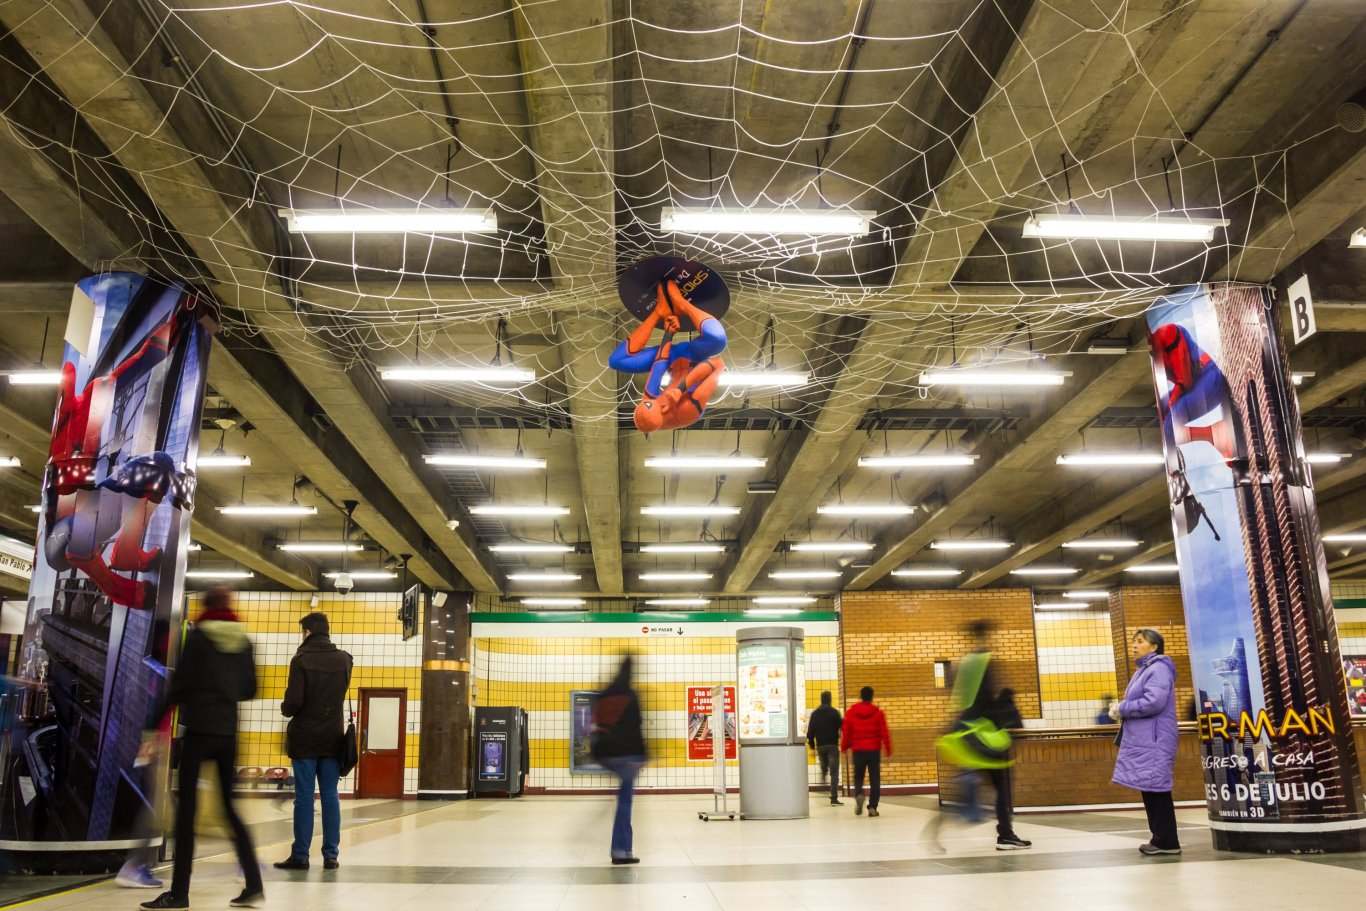 Spiderman Homecoming full station domination campaign in Santiago metro, JCDecaux Chile, Jun 2017